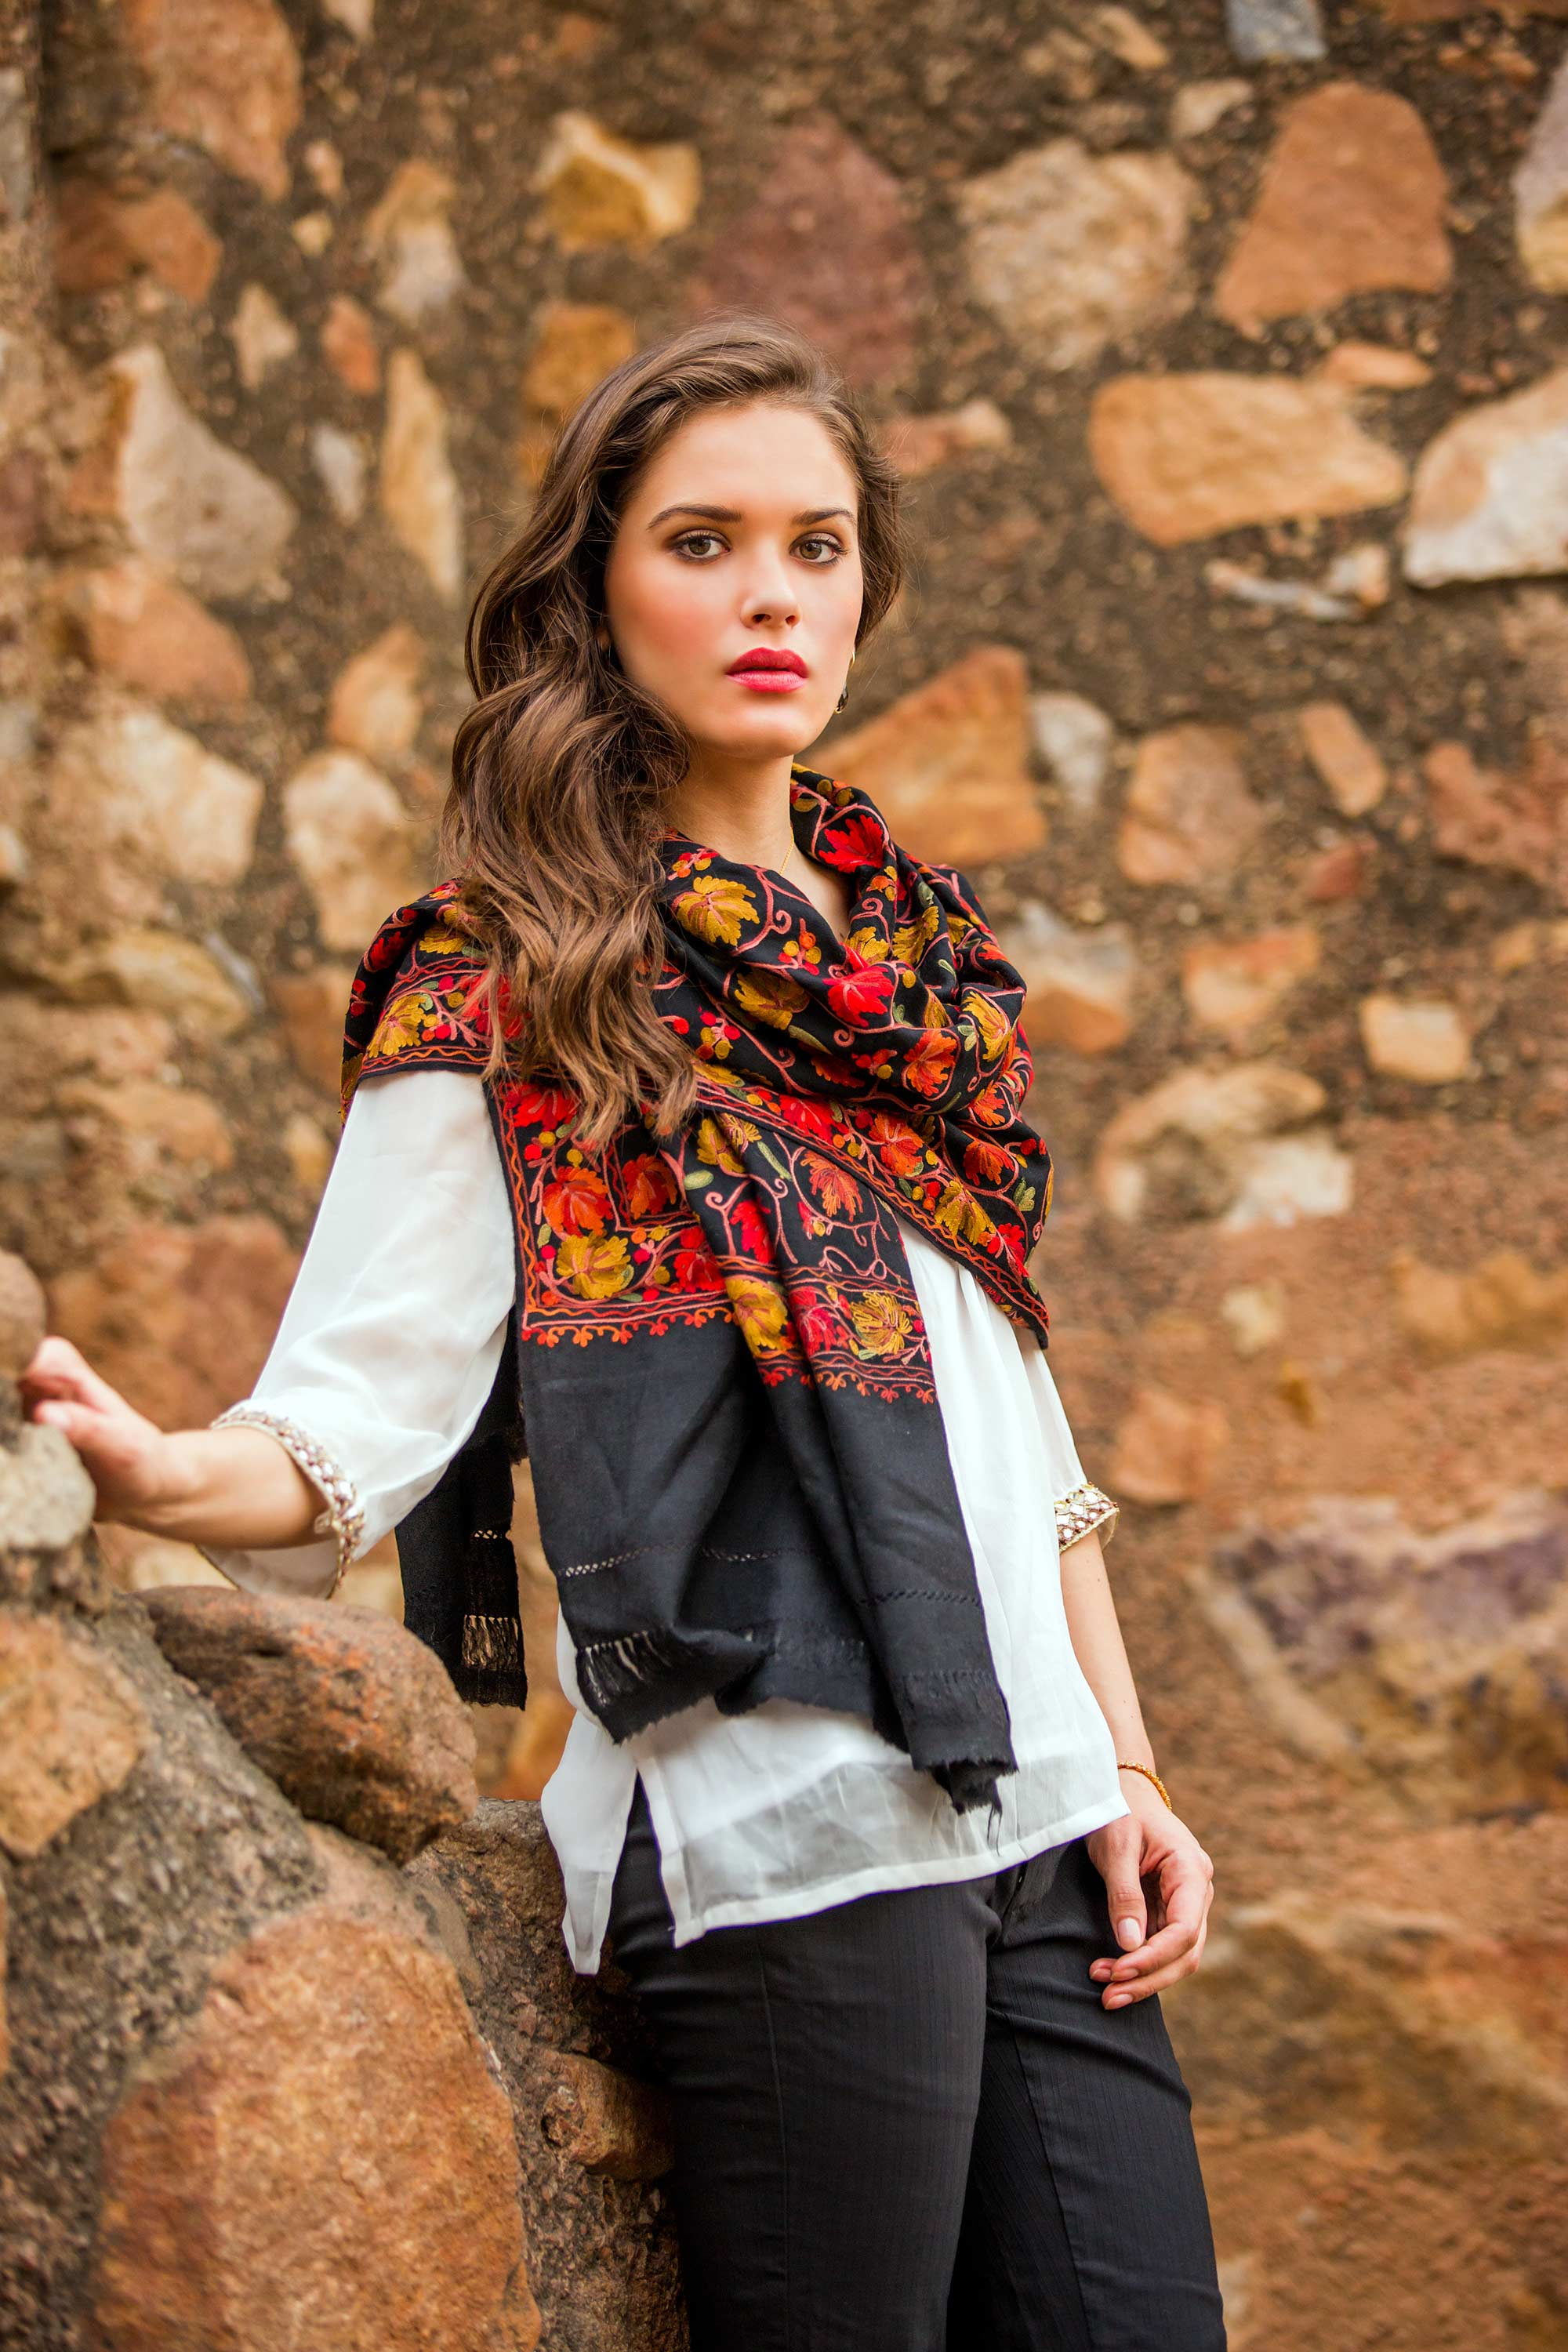 Artisan Made Floral Chain Stitch Embroidery Black Wool Shawl, 'Midnight Mums' Scarf and Shawl styles